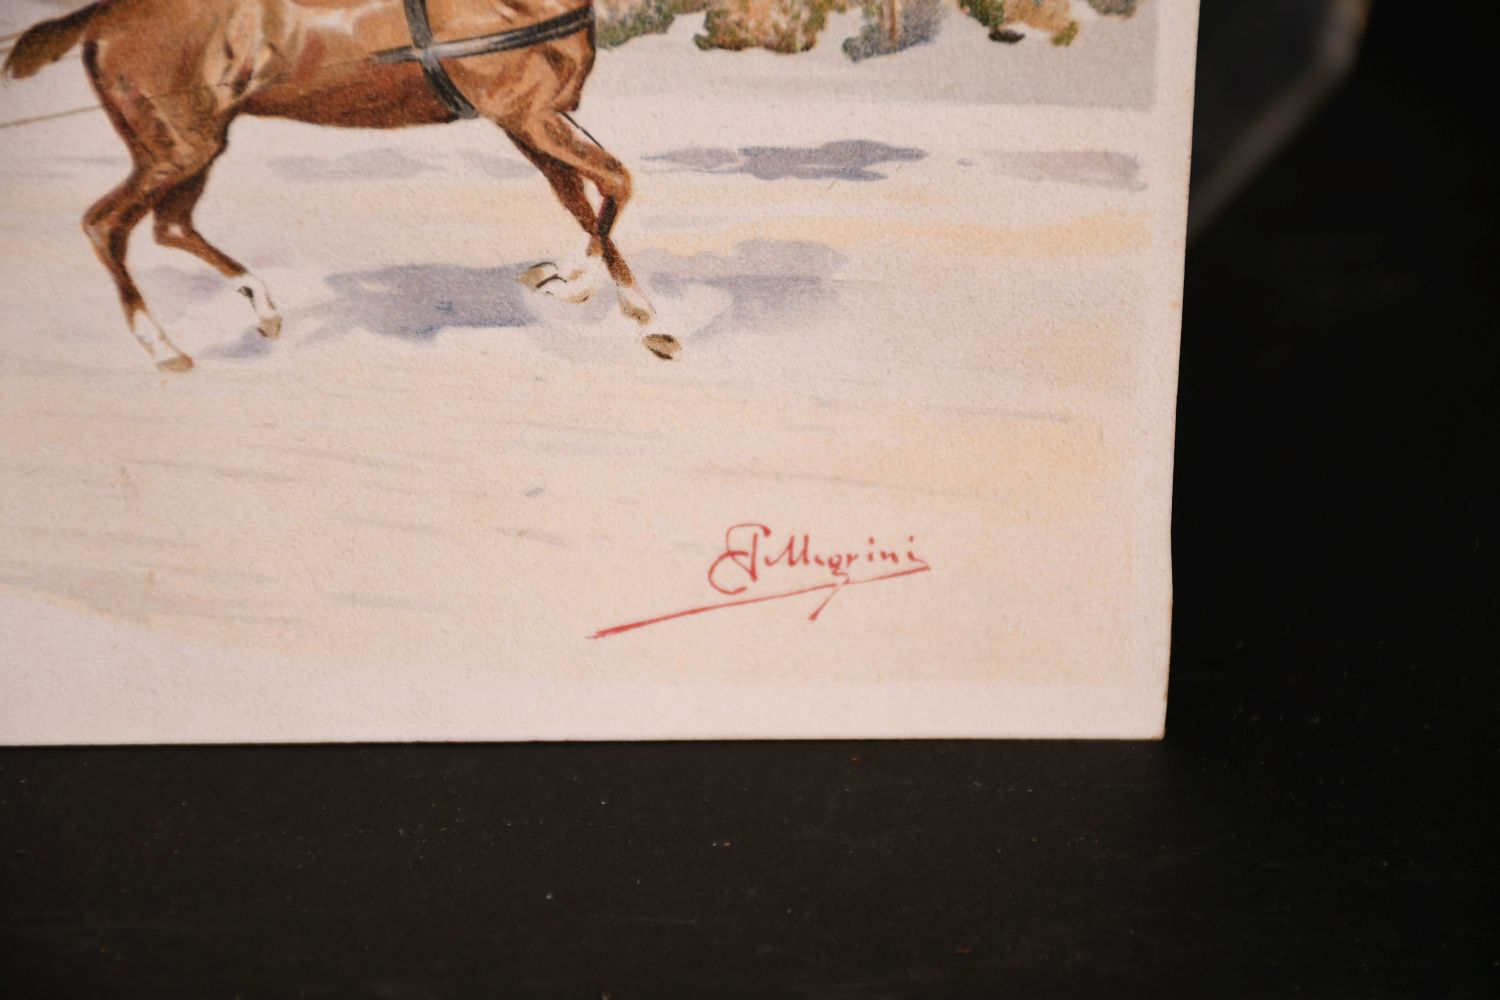 Carlo Pellegrini (1839-1889) Italian, 'Skijoring', A figure on skis being pulled behind a horse, - Image 3 of 4